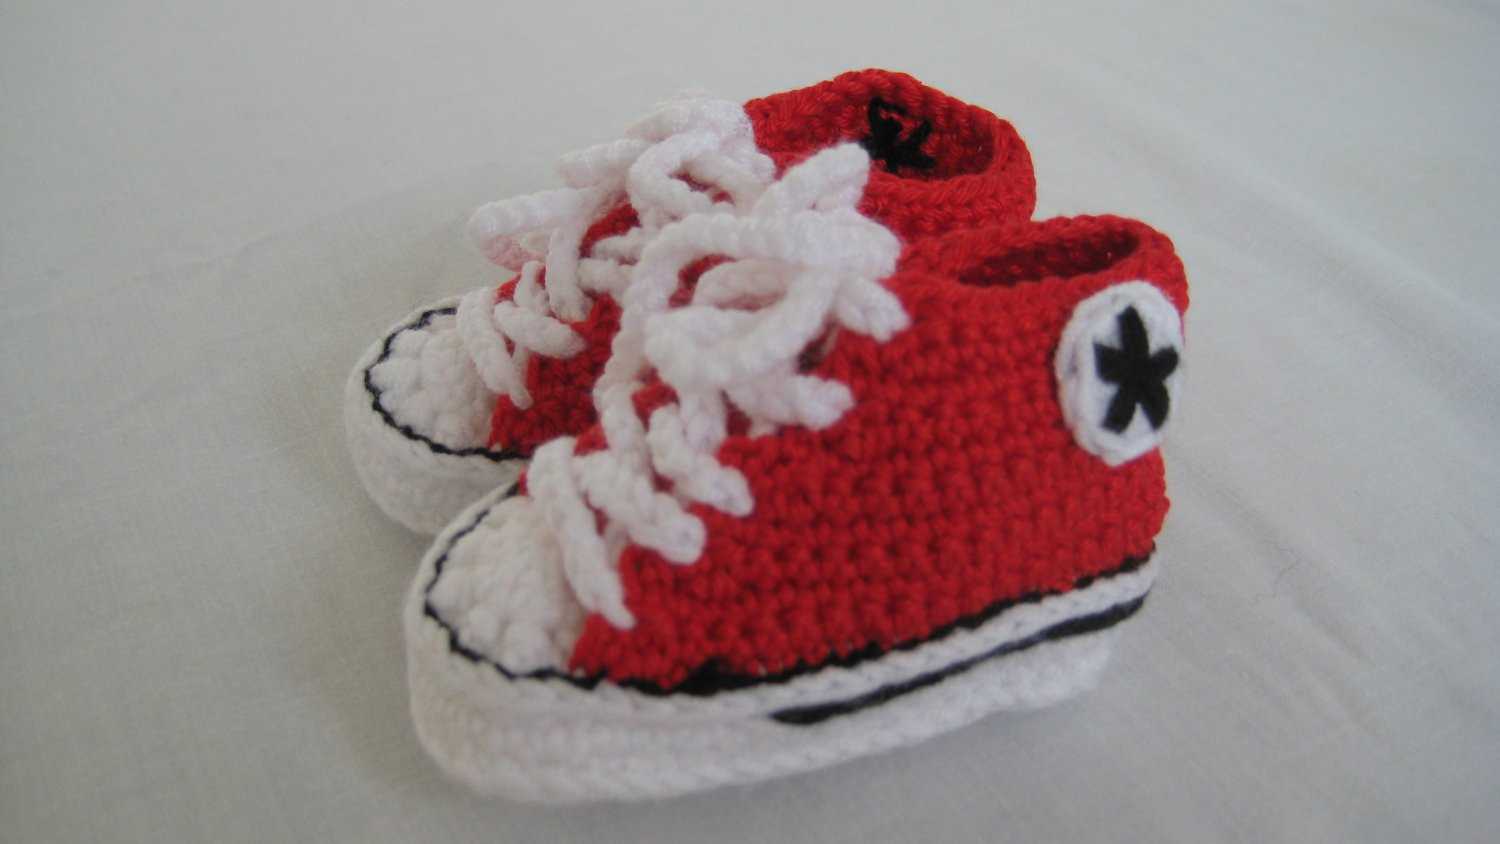 Beautiful Converse Style Crochet Baby Booties Red by Babyjaneknits Crochet Converse Baby Booties Of Wonderful 41 Models Crochet Converse Baby Booties